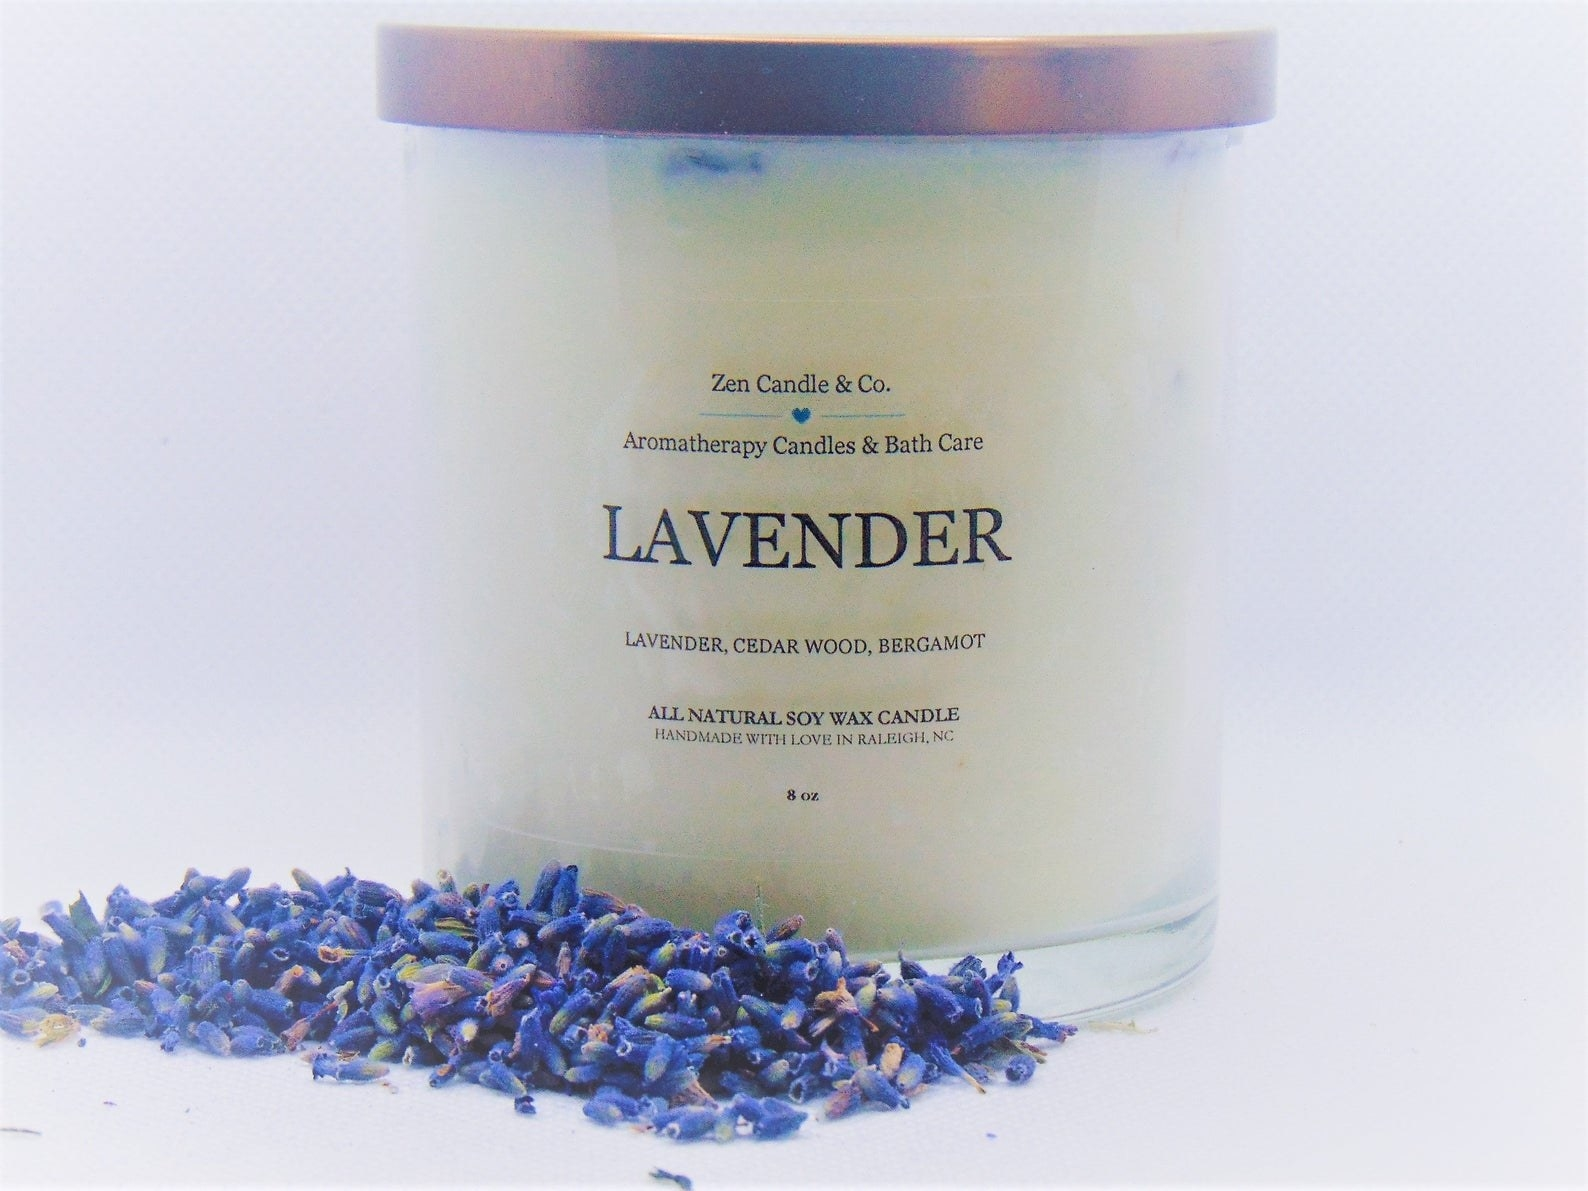 The candle jar with tiny lavender petals next to it